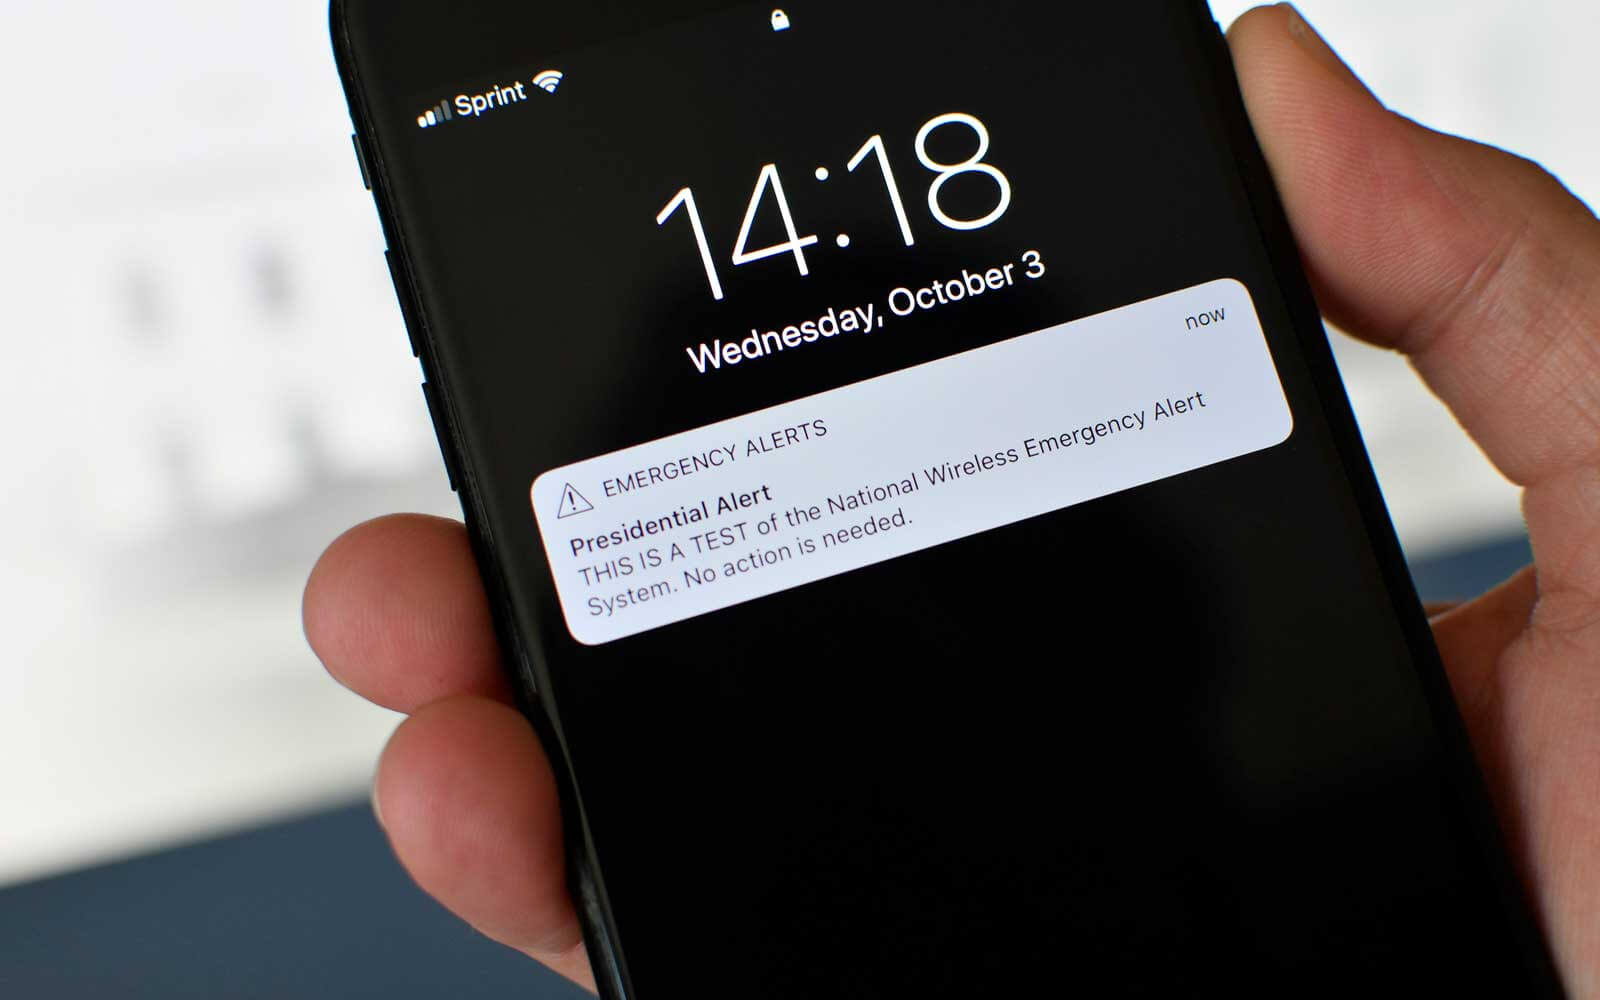 Flaws in LTE can allow hackers to easily spoof presidential alerts